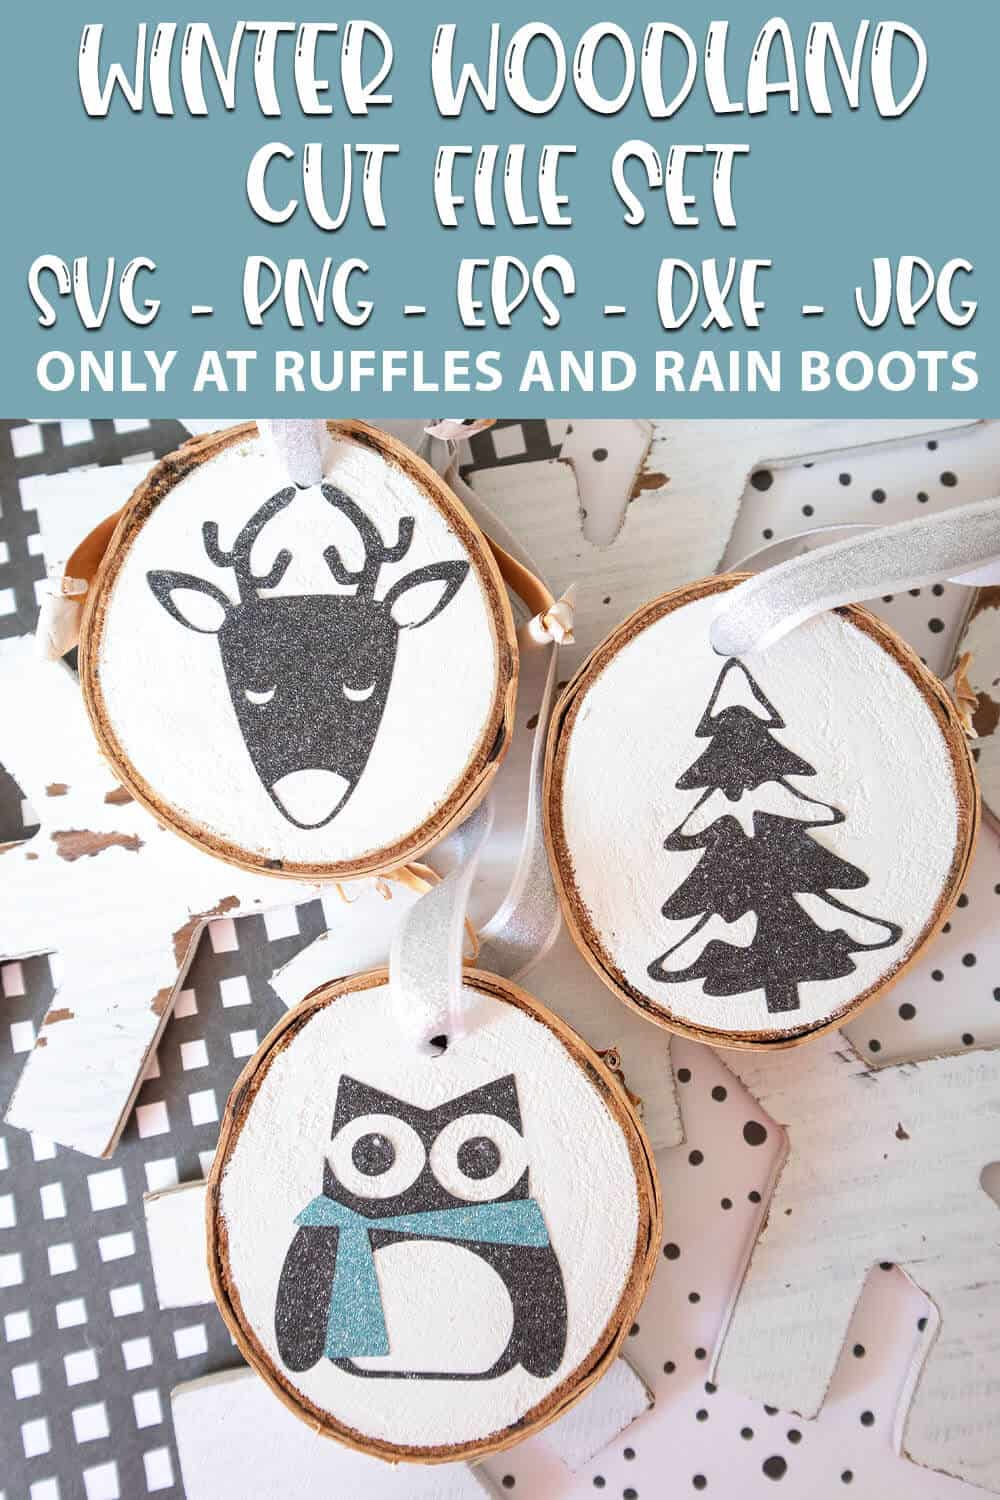 Winter Woodland Cut File Set on wood round ornaments with text which reads winter woodland cut file set svg png eps dxf jpg